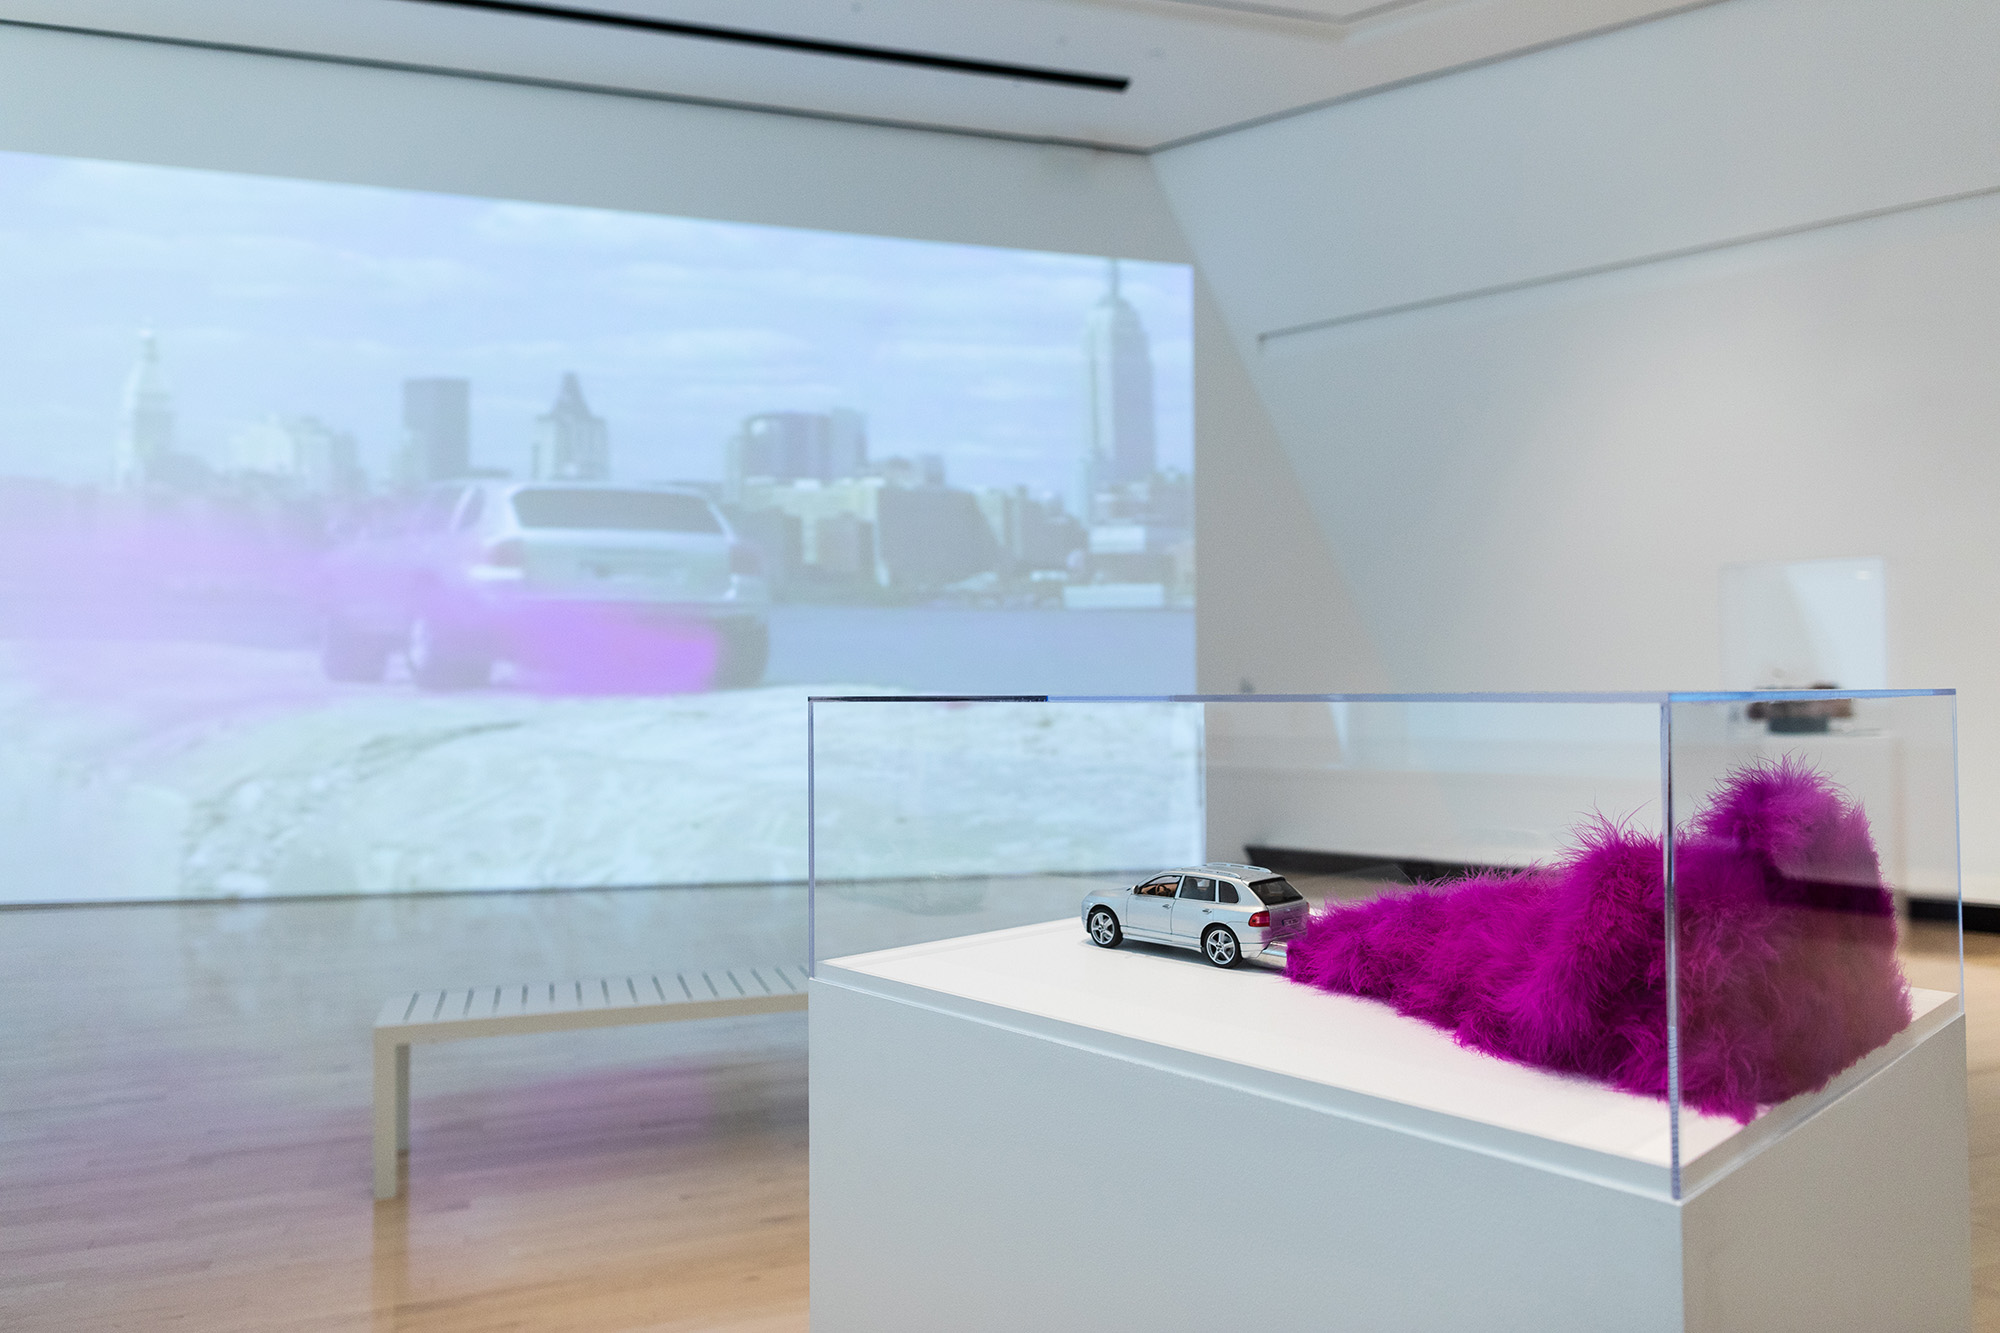 <i>MATTER(S) matter(s): Bridging Research in the Arts and Sciences</i>, installation view at the Eli and Edythe Broad Art Museum at Michigan State University, 2018. Photo: Eat Pomegranate Photography